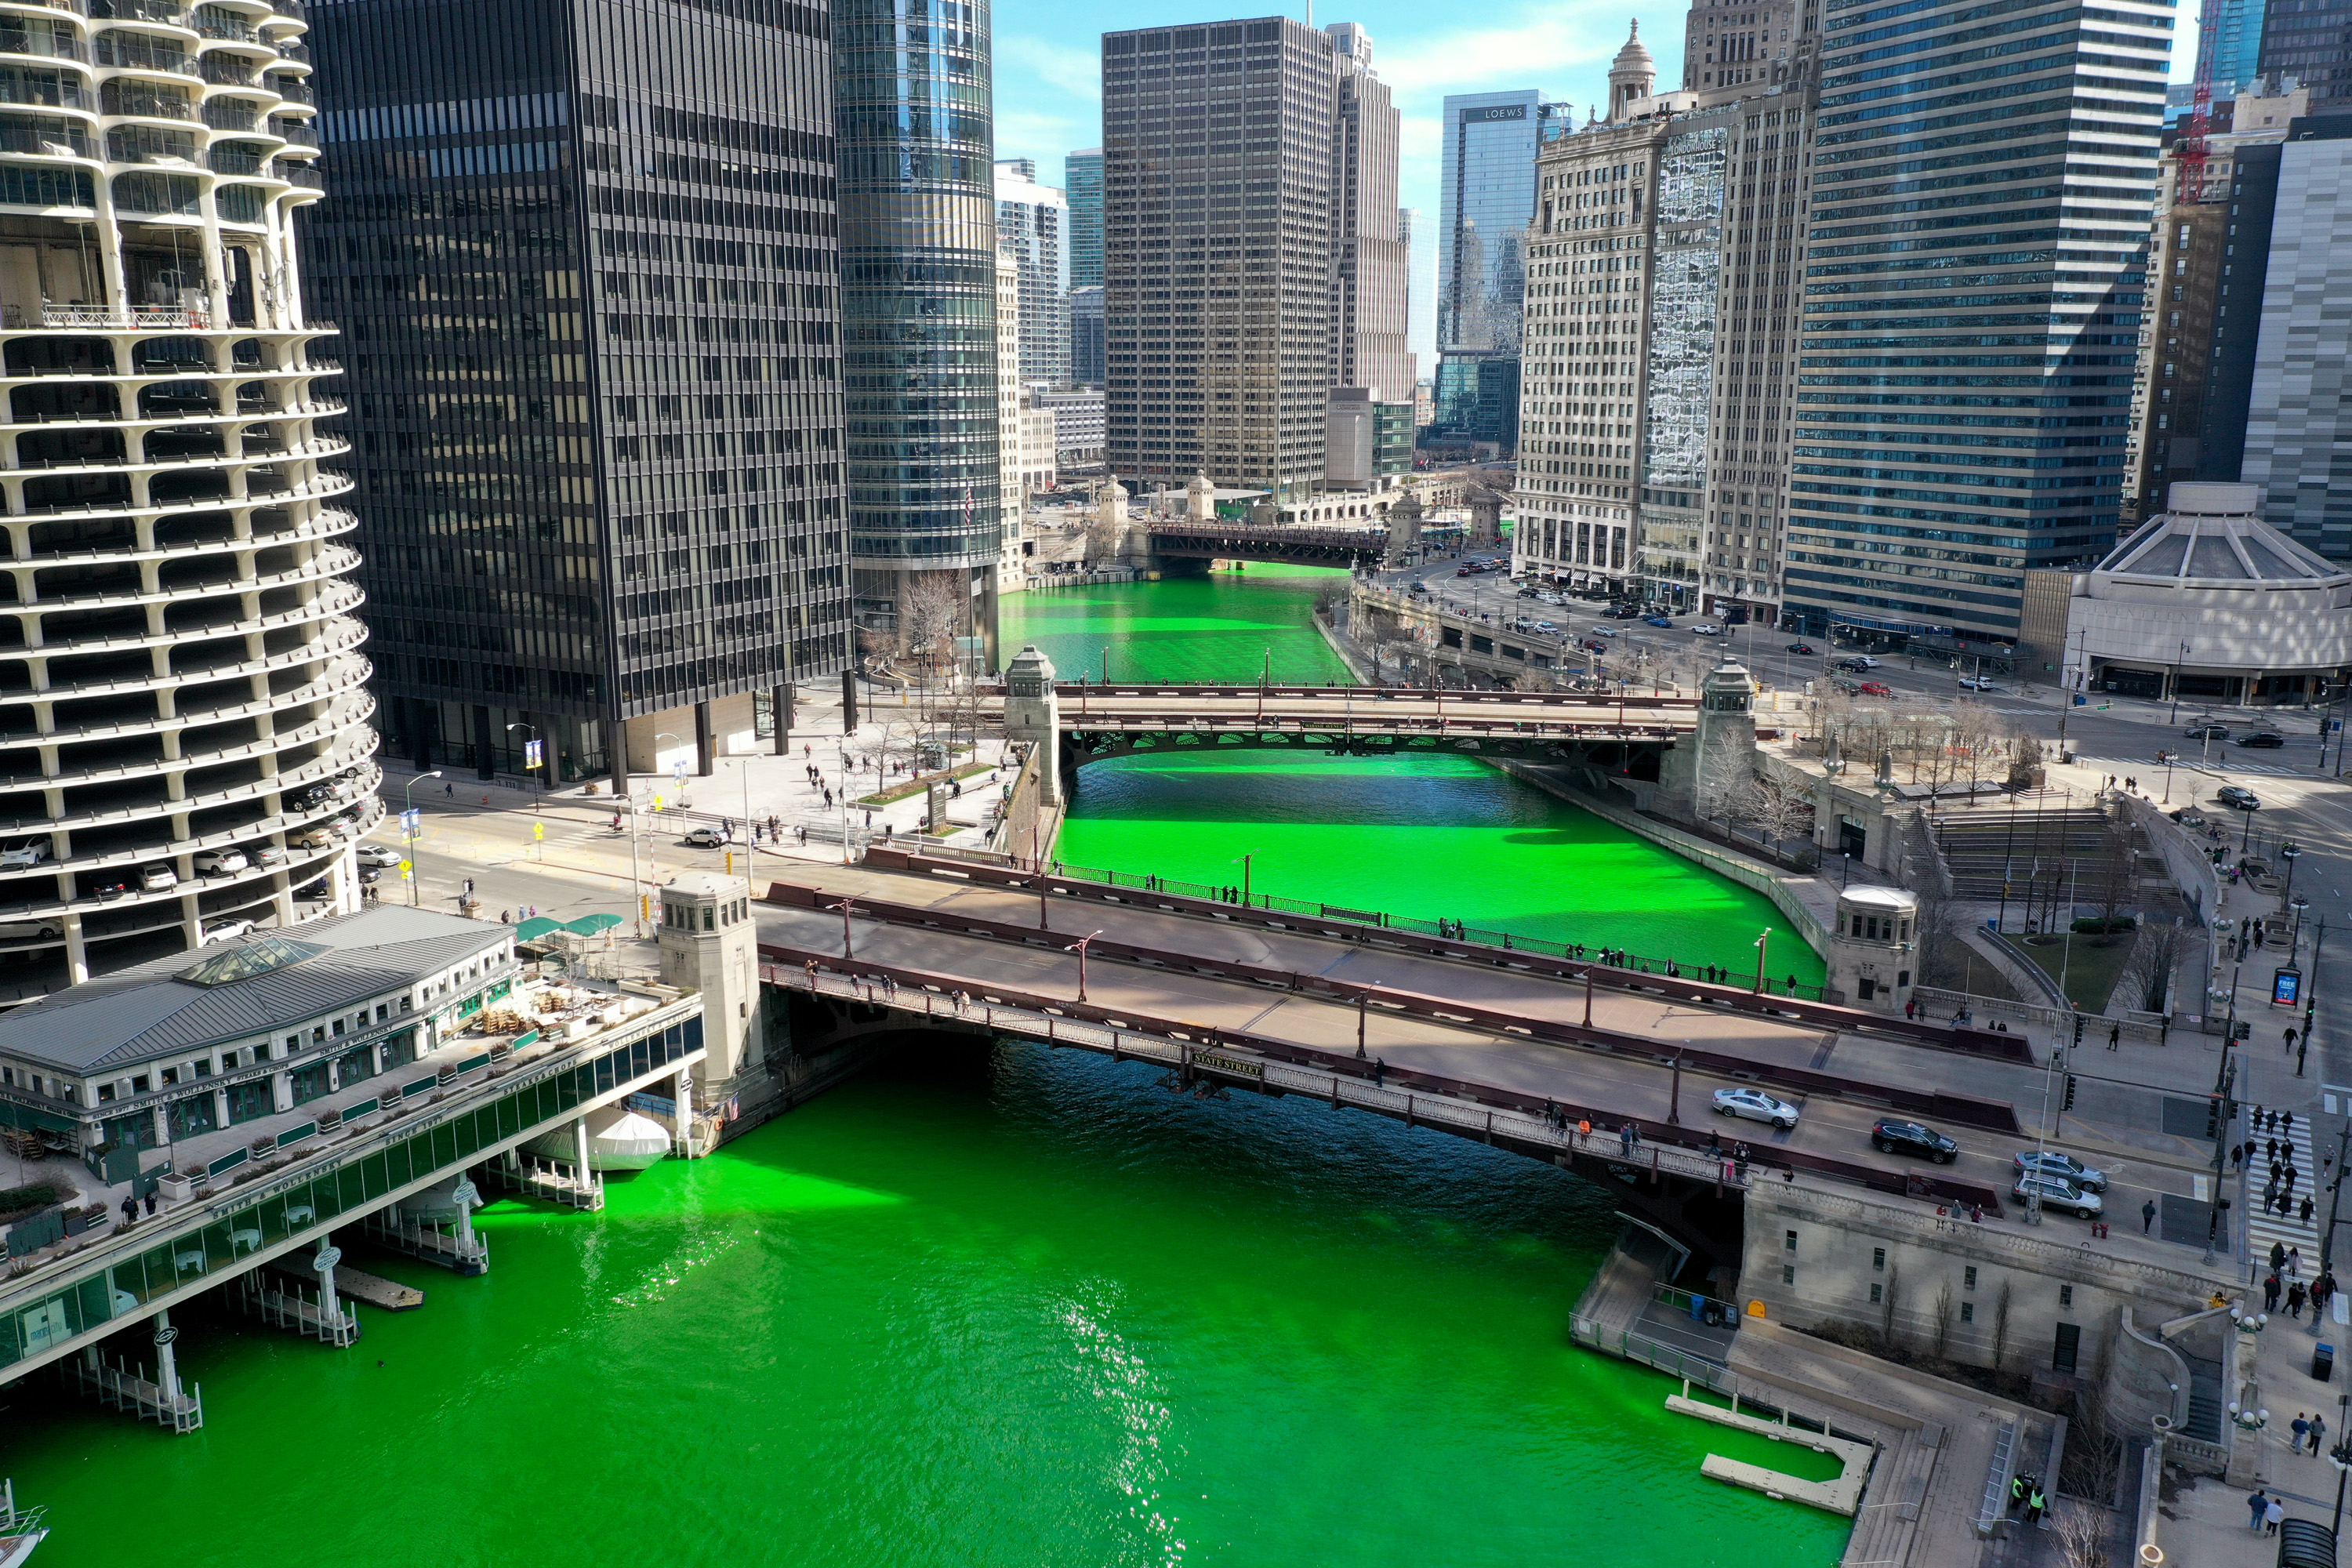 In A Surprise Move, Chicago River Dyed Green Ahead Of St Patrick's Day